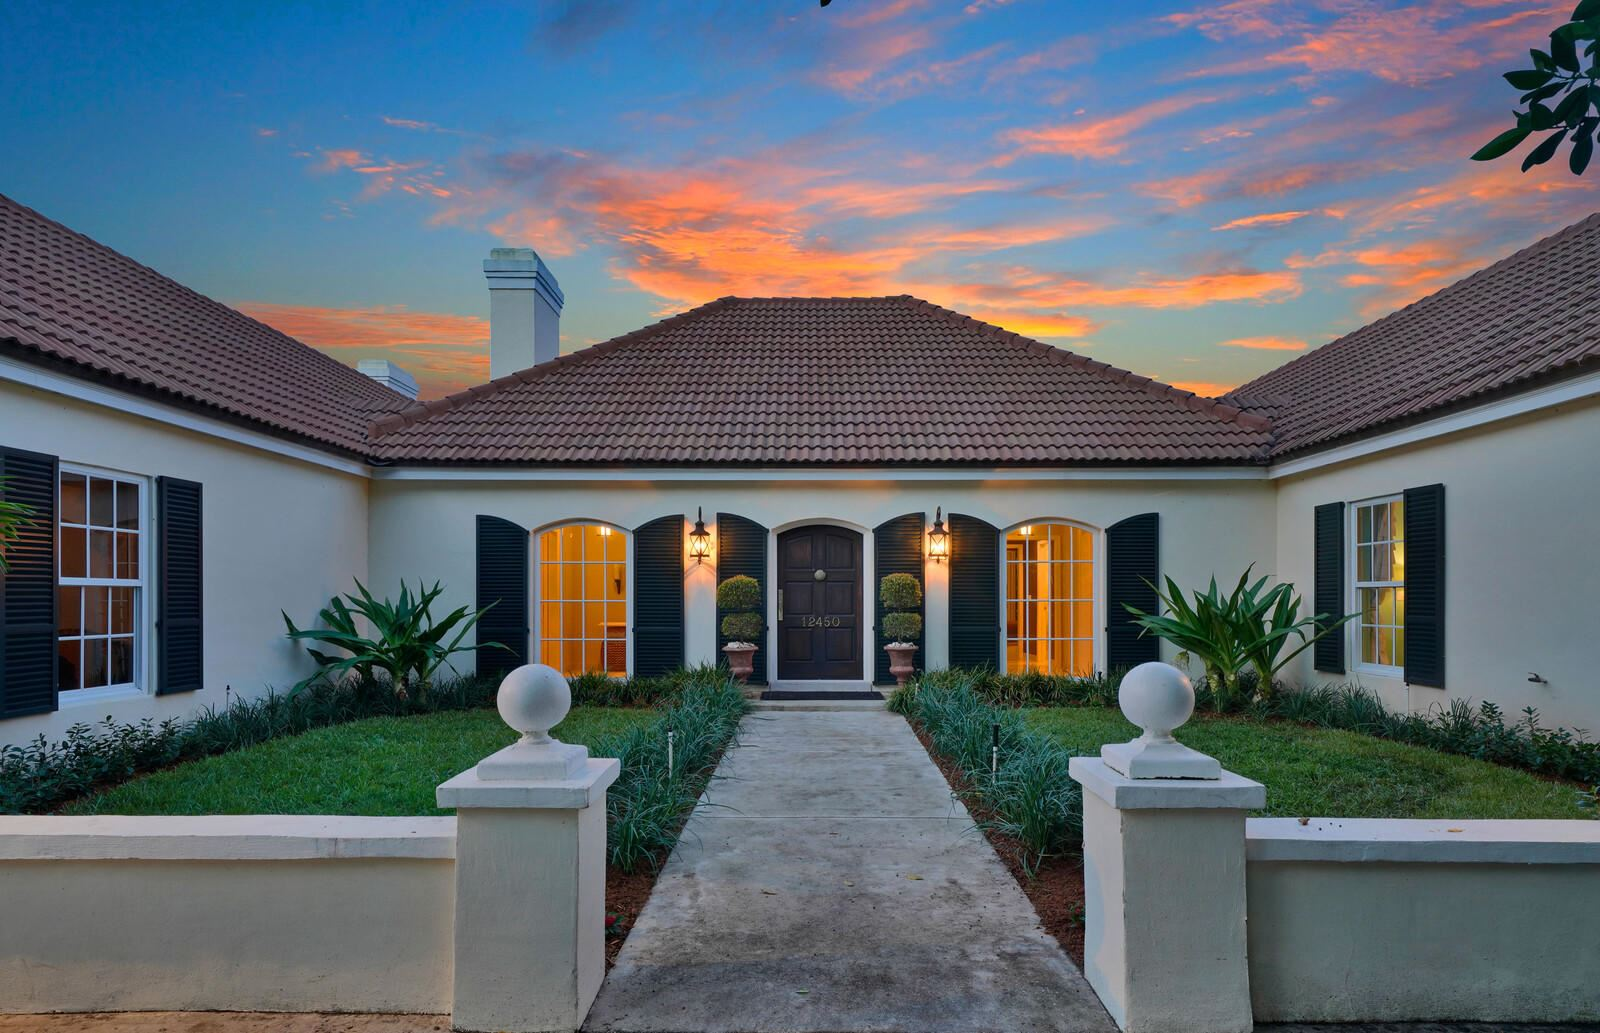 Photo of 12450 Indian Road, North Palm Beach, FL 33408 (MLS # RX-10655712)